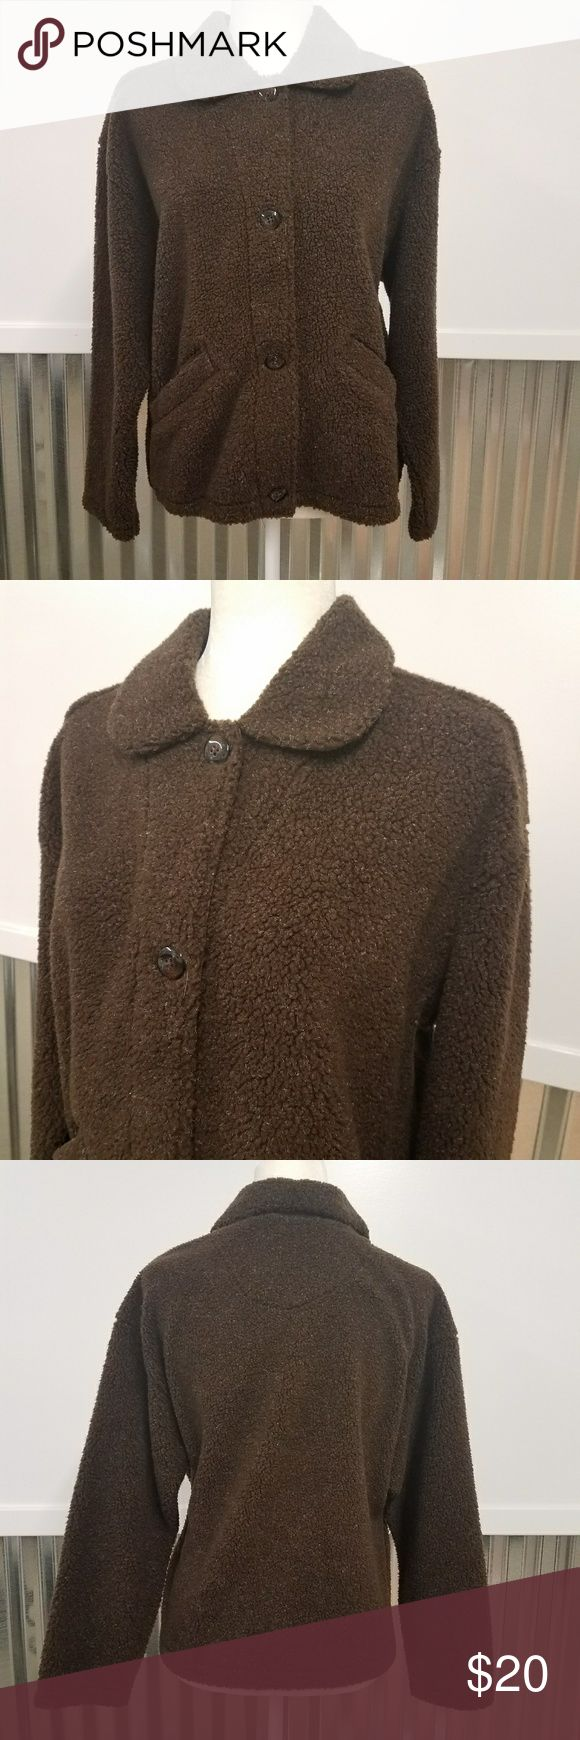 """Columbia Cozy Button Up Jacket Columbia Cozy Button Up Jacket in excellent condition. It is a size medium. Color is brown. Buttons up and has pockets. 65% Acrylic, 30% Polyester, 5% Modacrylic. Approximate measurements are: 24"""" Chest, 24"""" Long  (back collar to bottom) Columbia Jackets & Coats"""